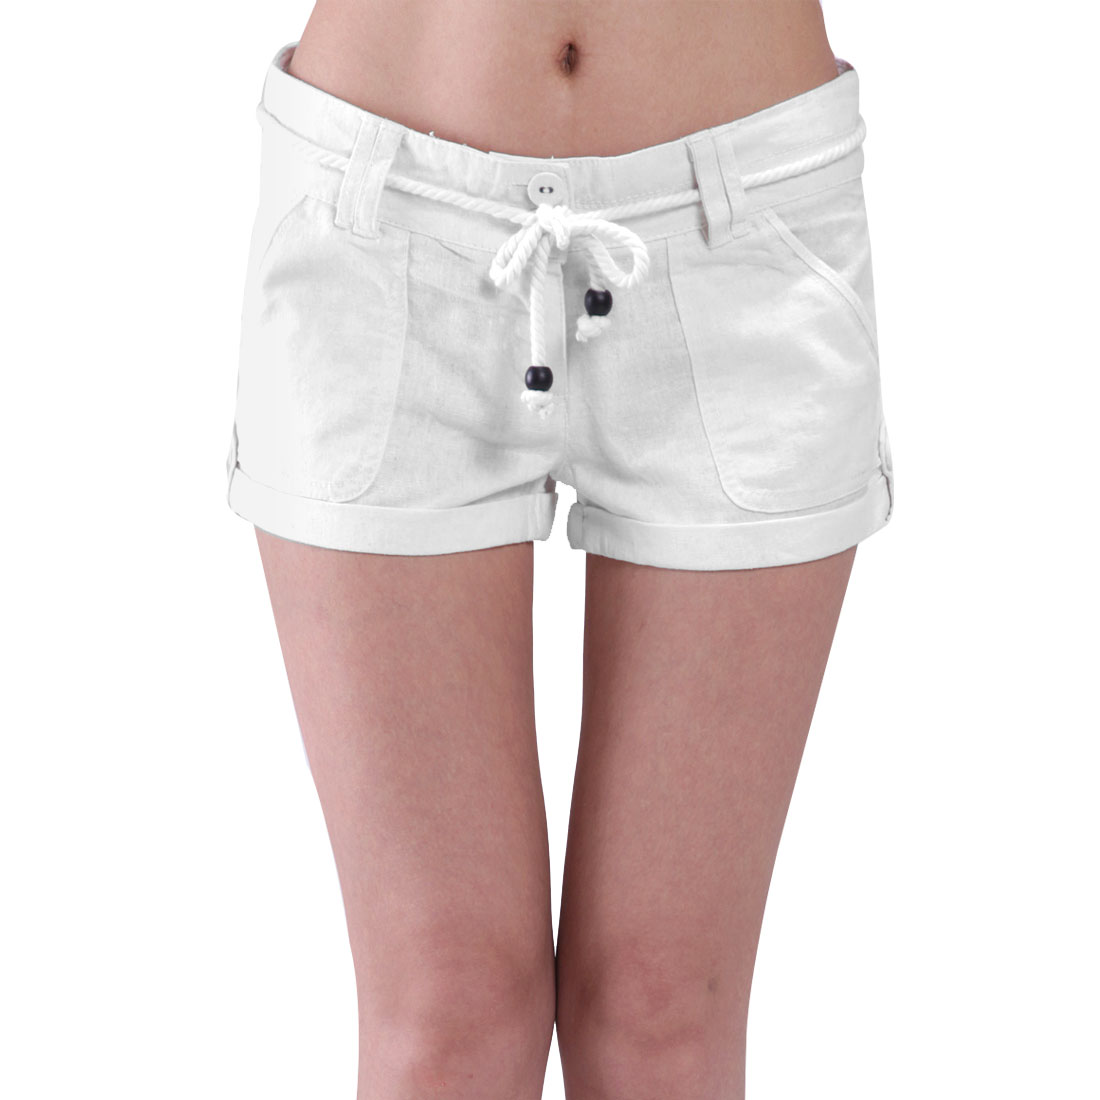 Cuff Tabs Hip Patch Pockets Leisure Zippered Shorts Pants White S for Ladies